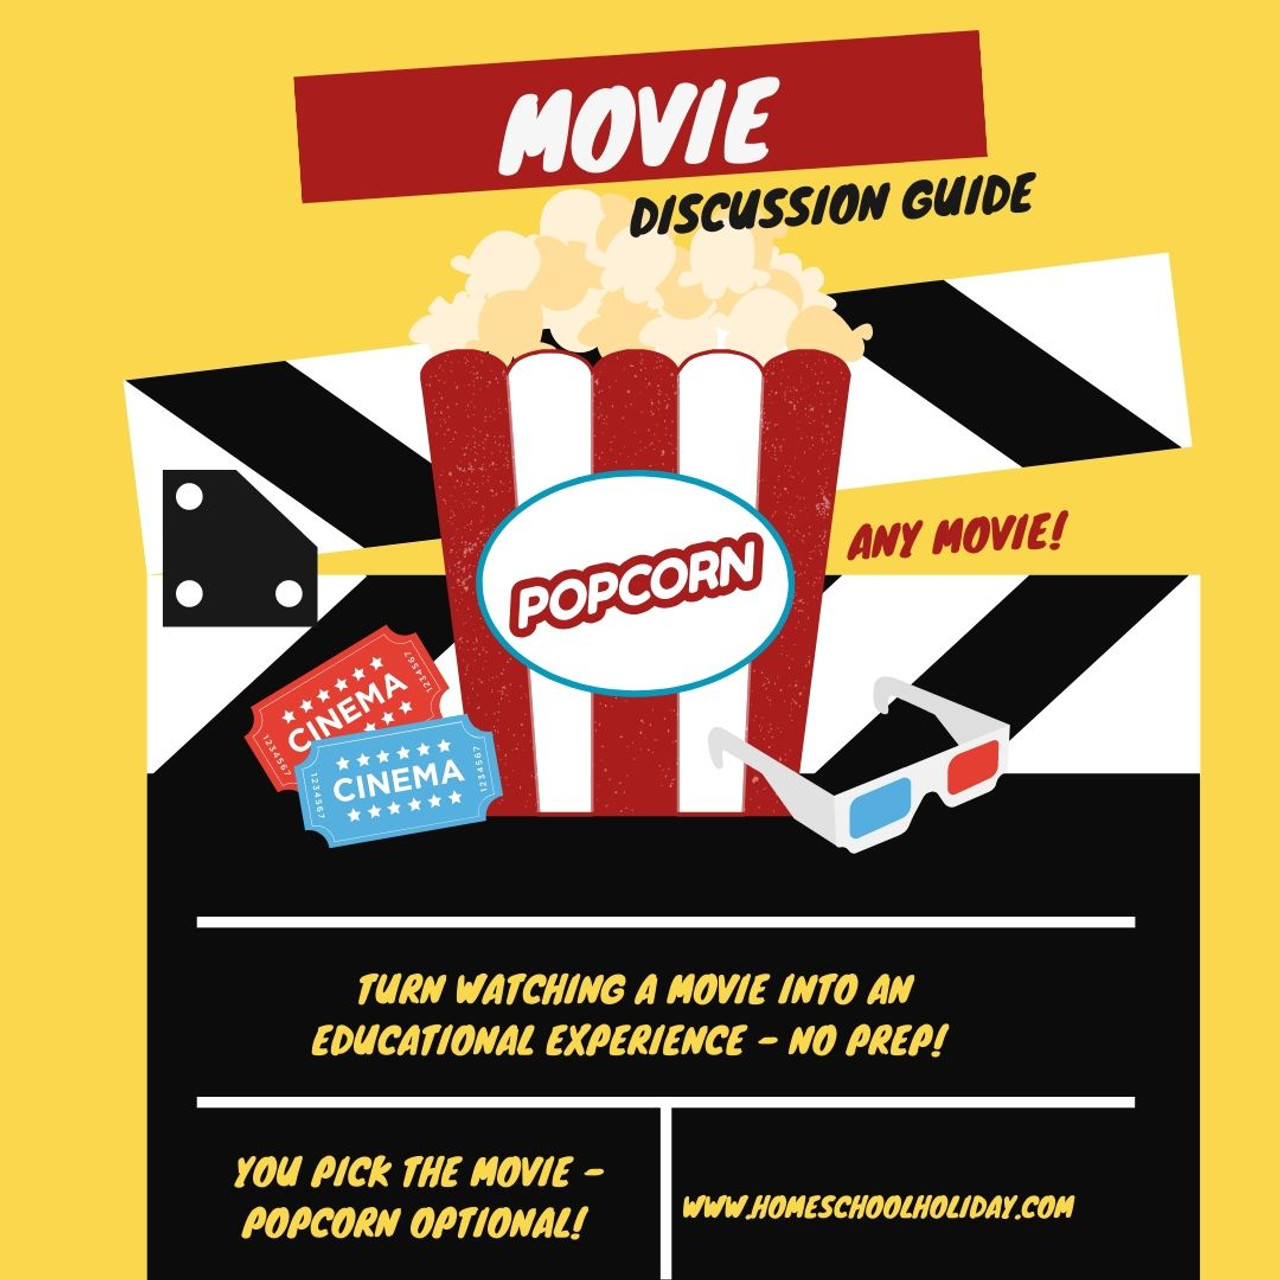 Movie Discussion Guide - FREE! (With Google Form)